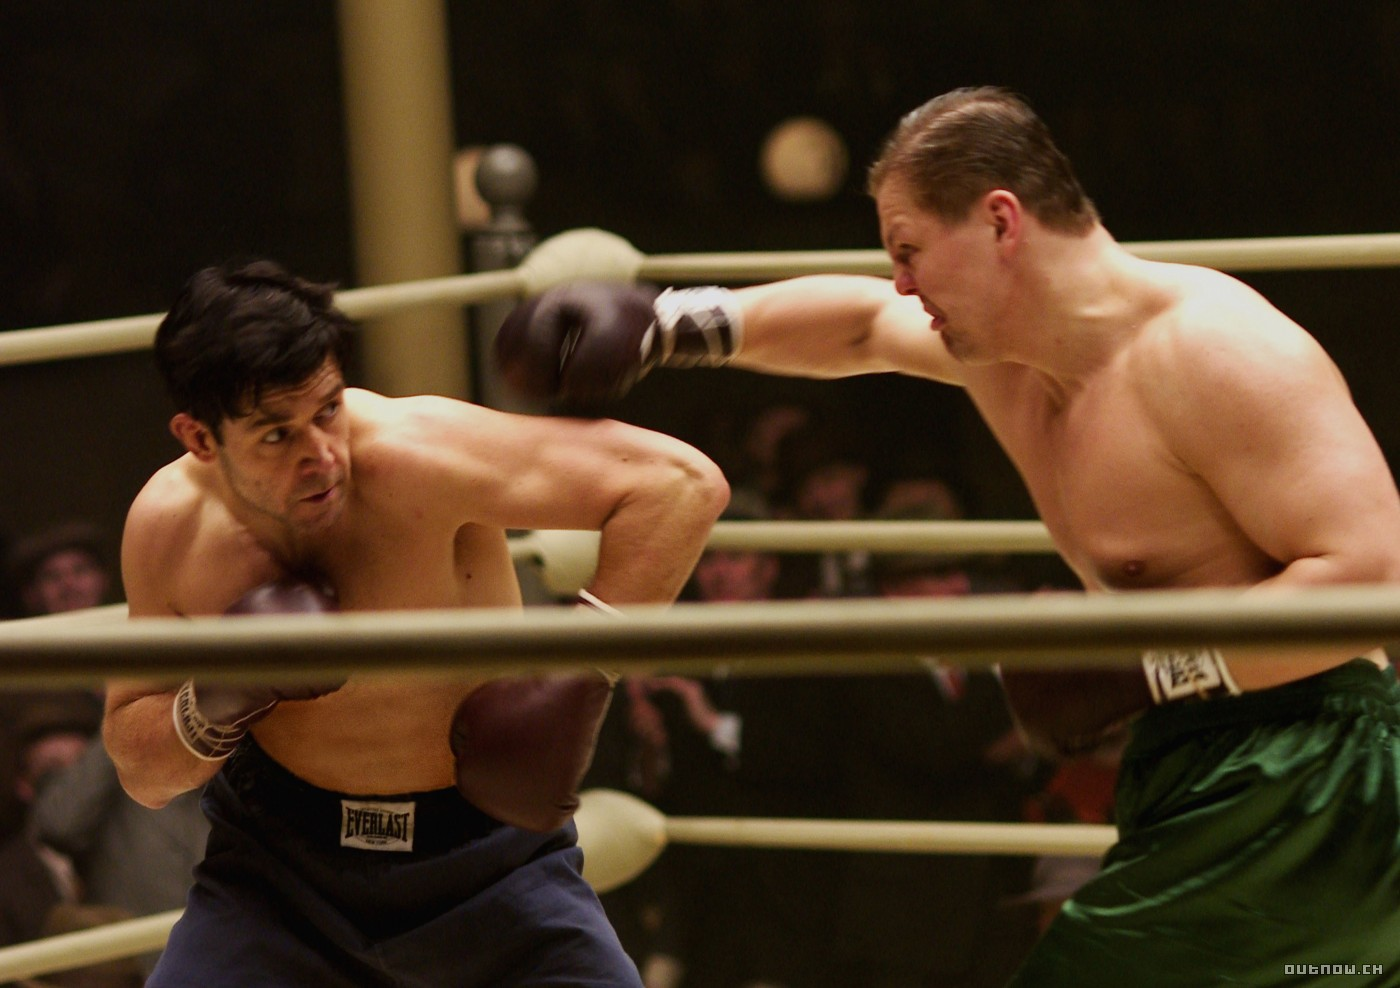 ron howard s latest movies vs greatest movies killing time cinderella man